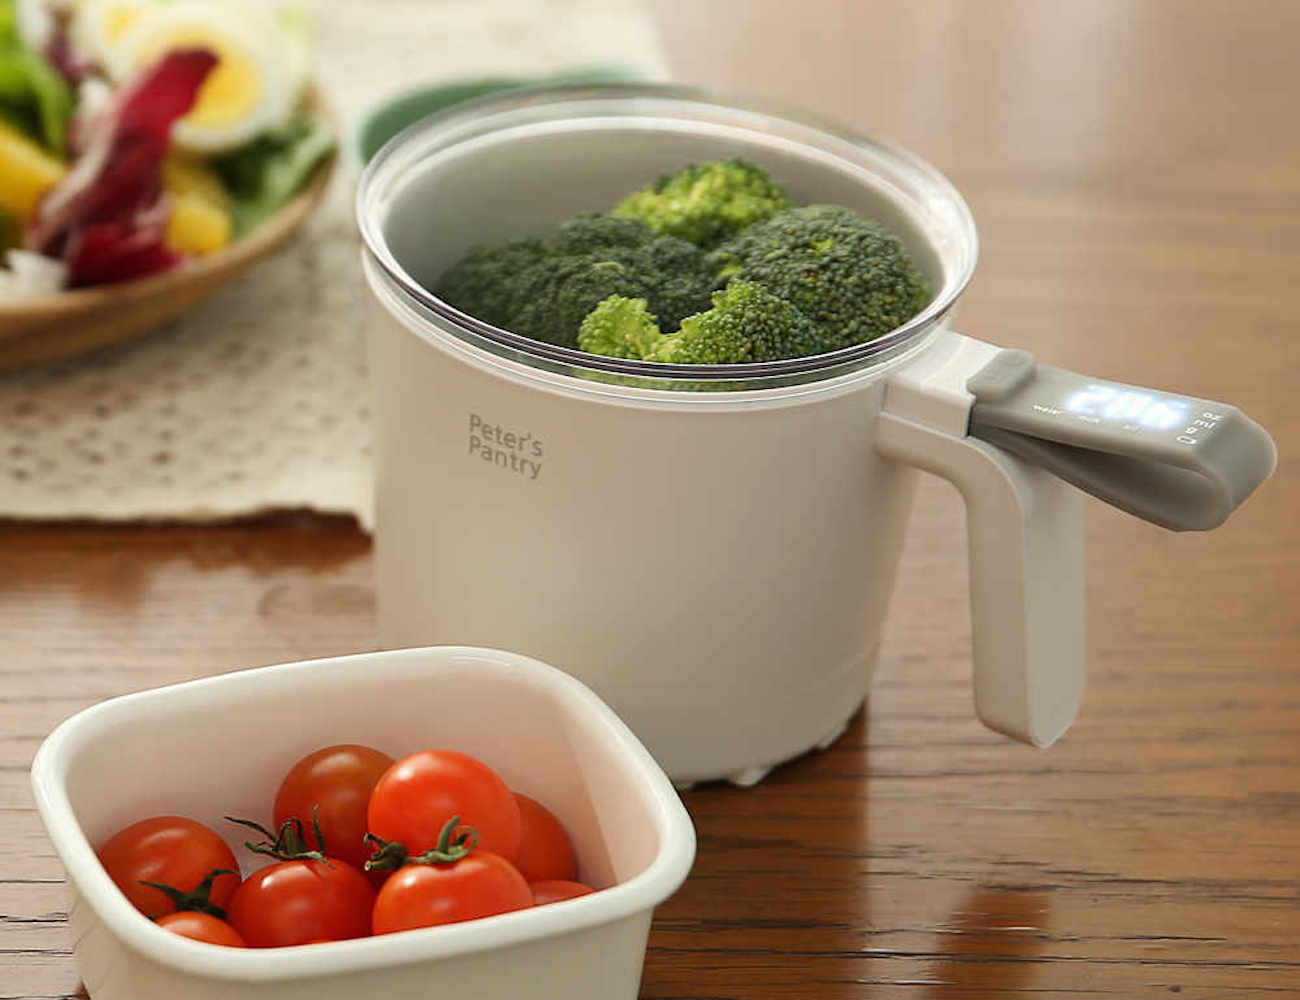 Peter's Pantry Smart Measuring Cup